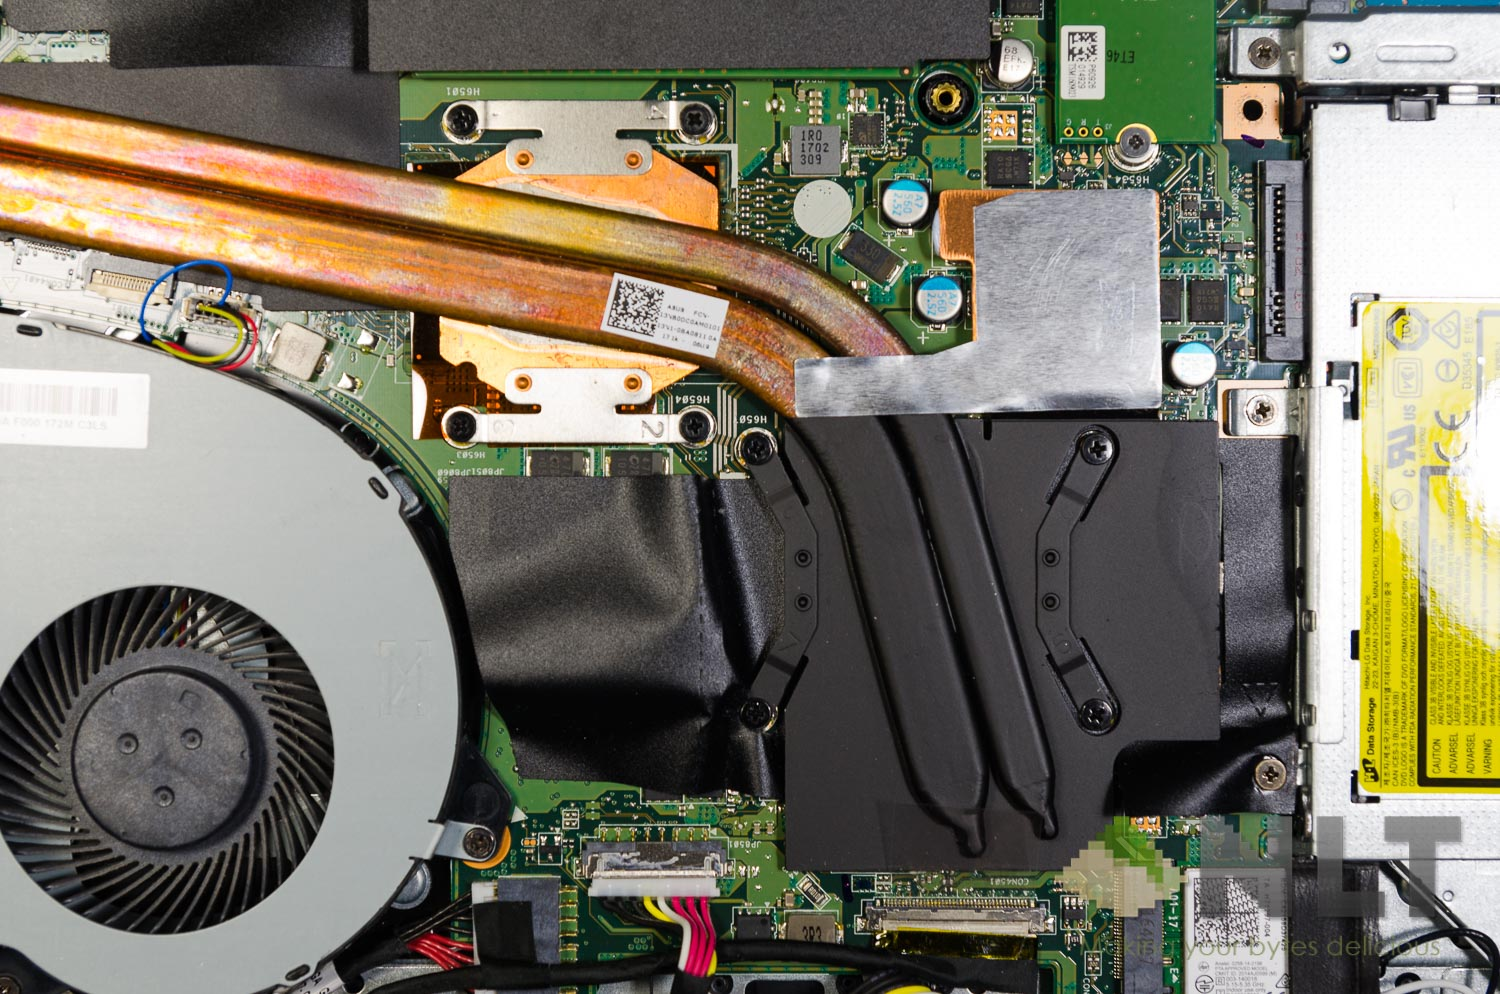 Experiment - Reapply Thermal Paste & Undervolt CPU For